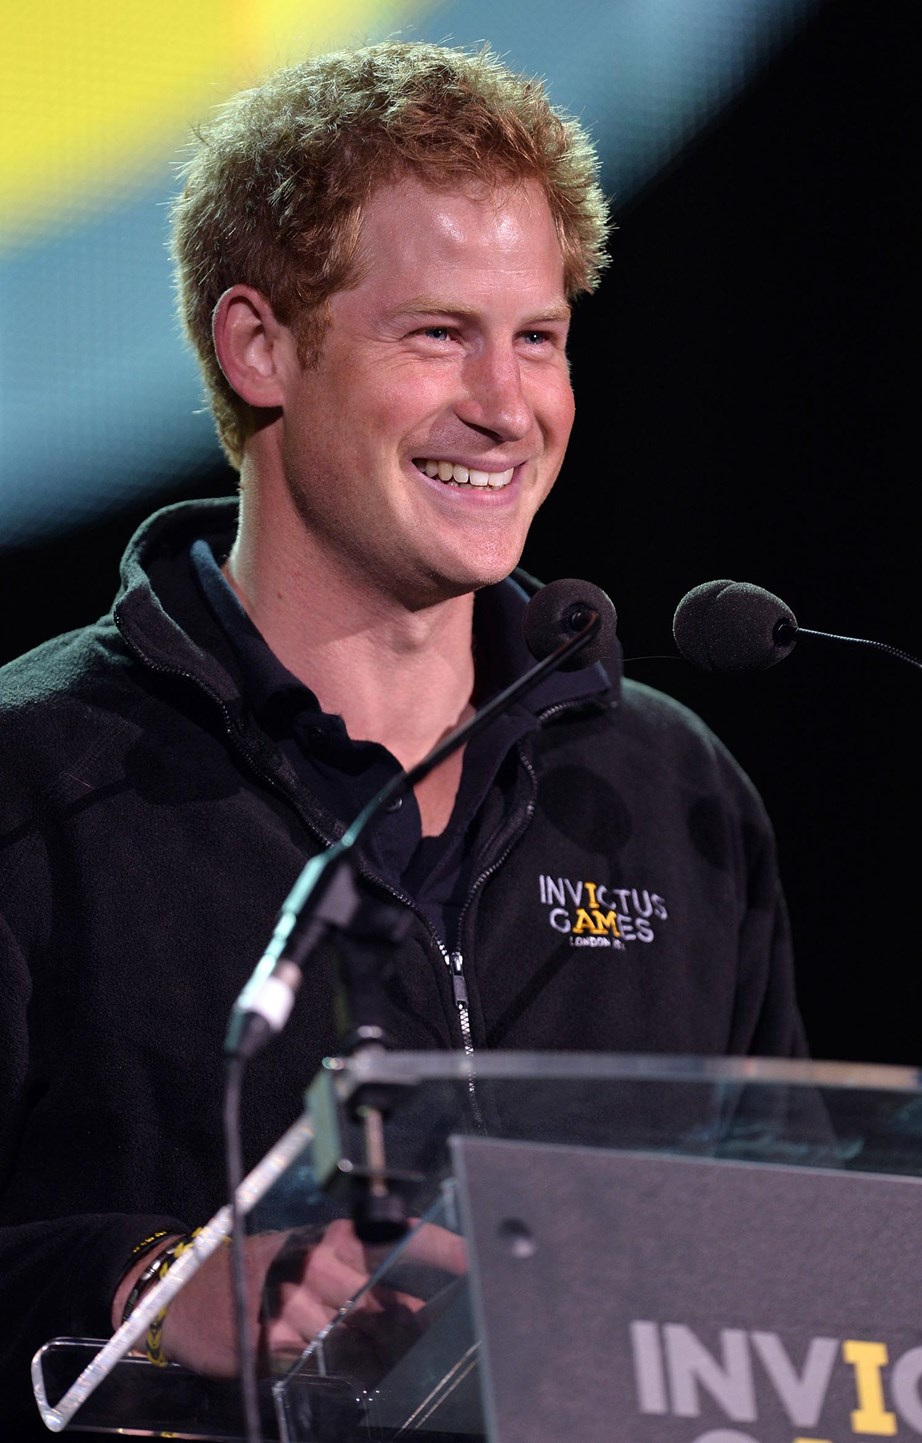 Prince Harry at the very first Invictus Games in 2014. *(Image: Getty)*